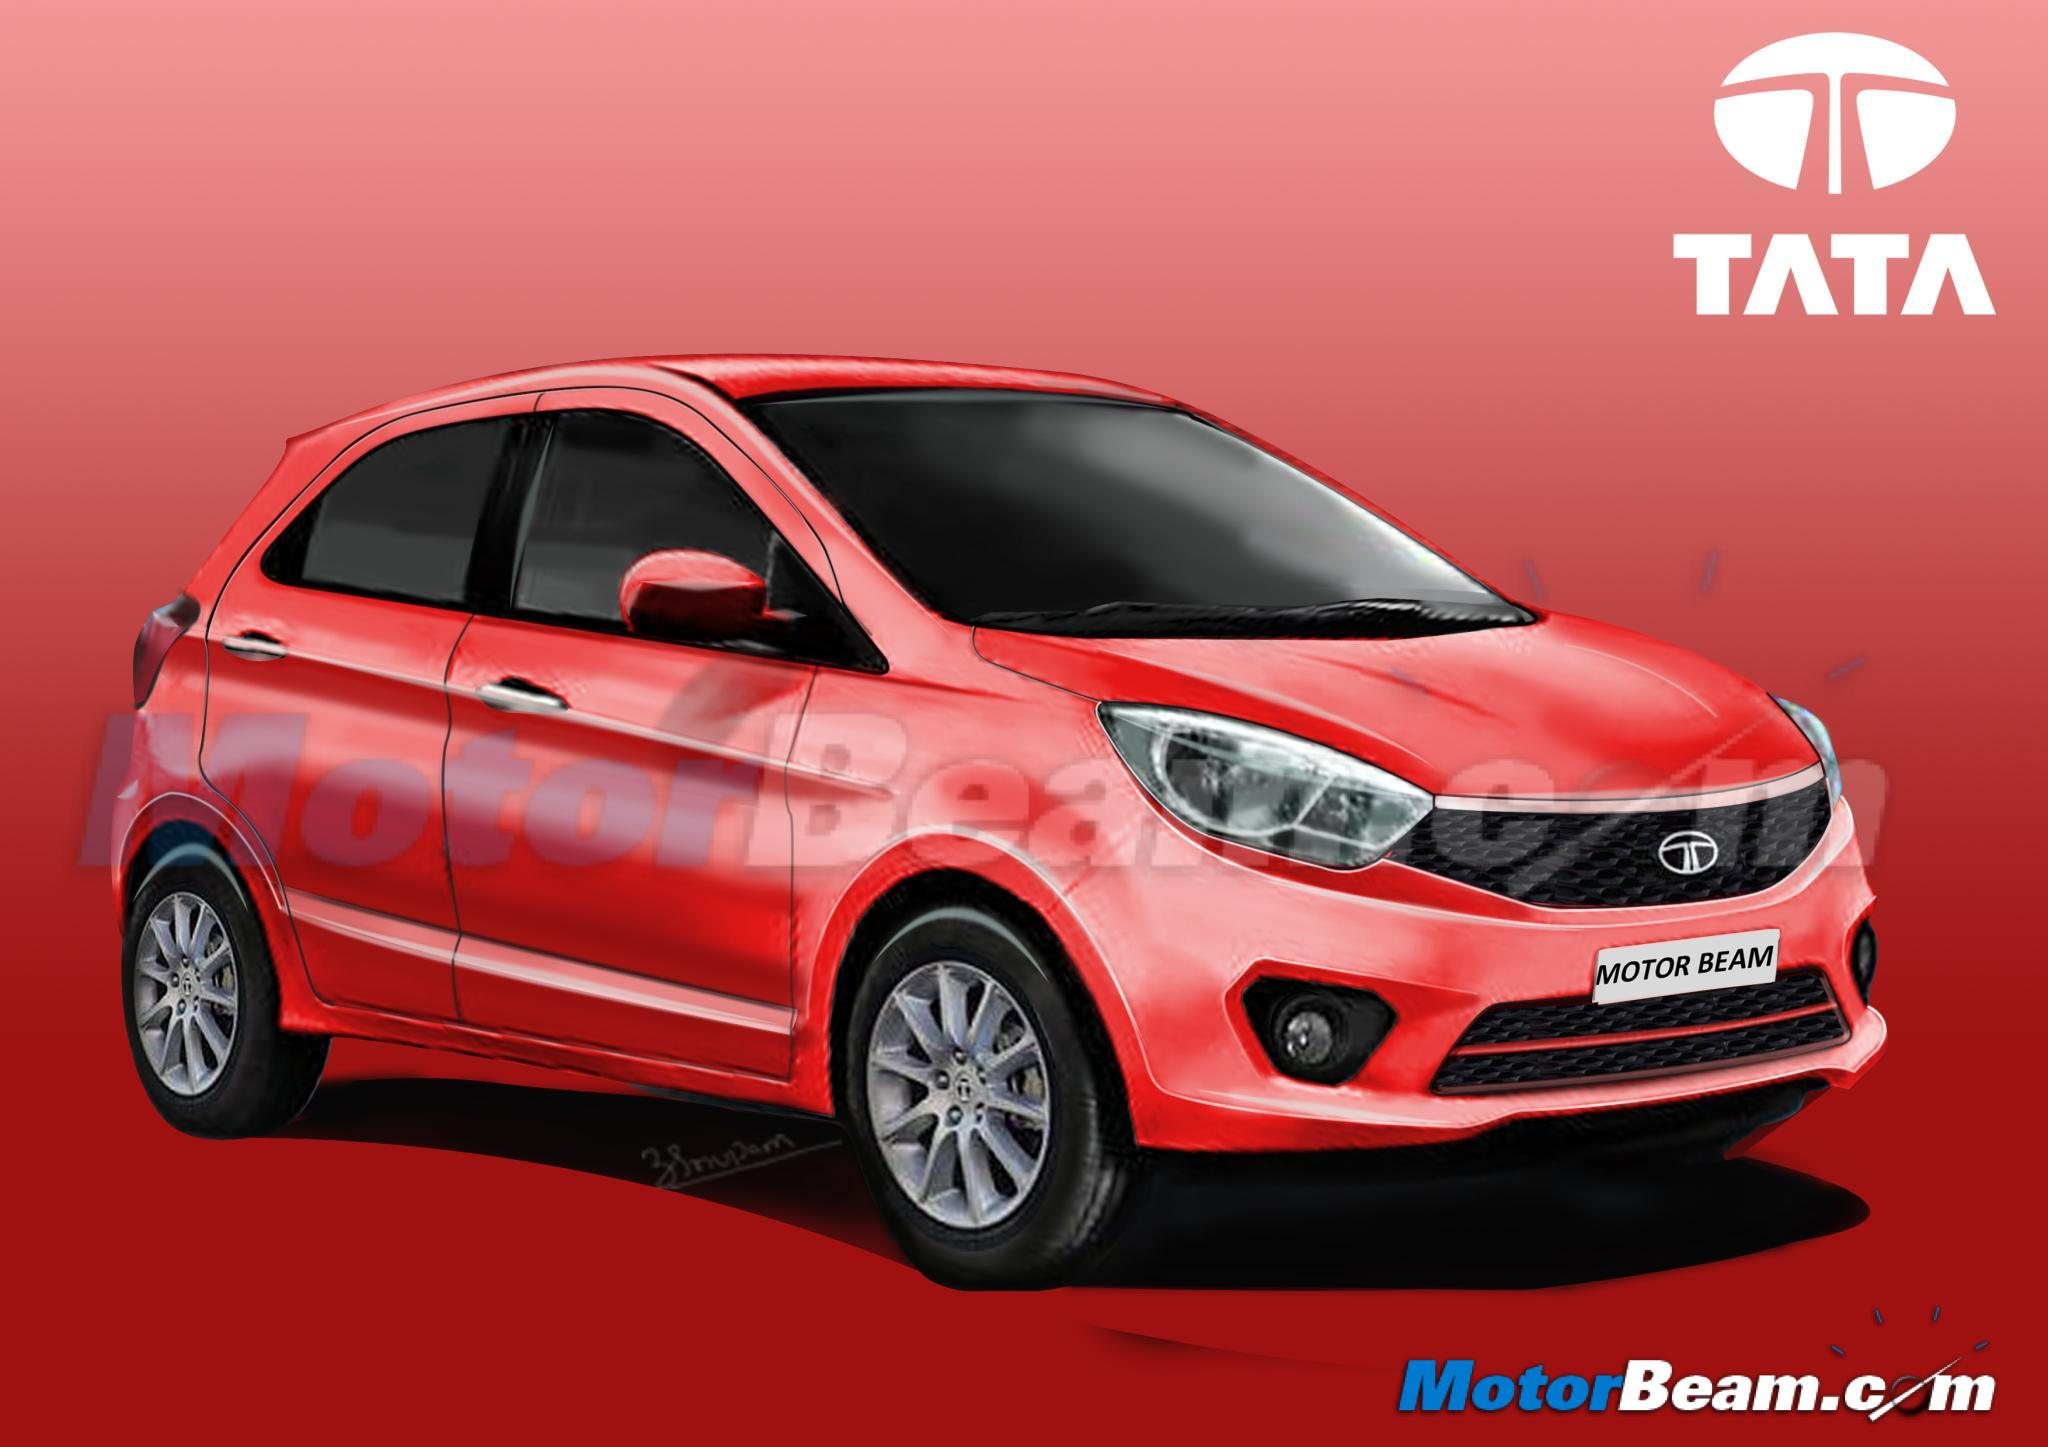 2016 Tata Kite Hatchback